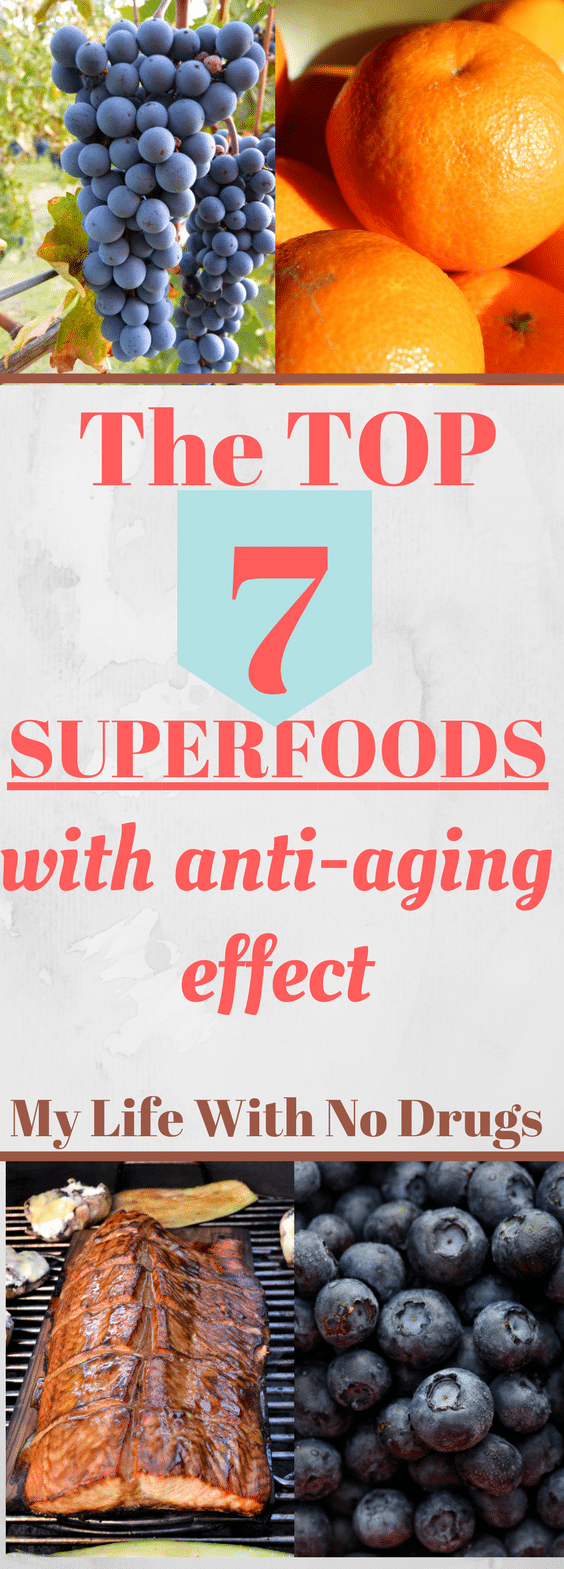 7 Superfoods with anti-aging effect #superfoods #antiaging #healthyfood #healthyeating #health #food #healthyeating #eating #dinner #food #cook #mealprep #fruit #nutrition #tips #breakfast #diet #health #healthyfood #foods #recipe #recipes